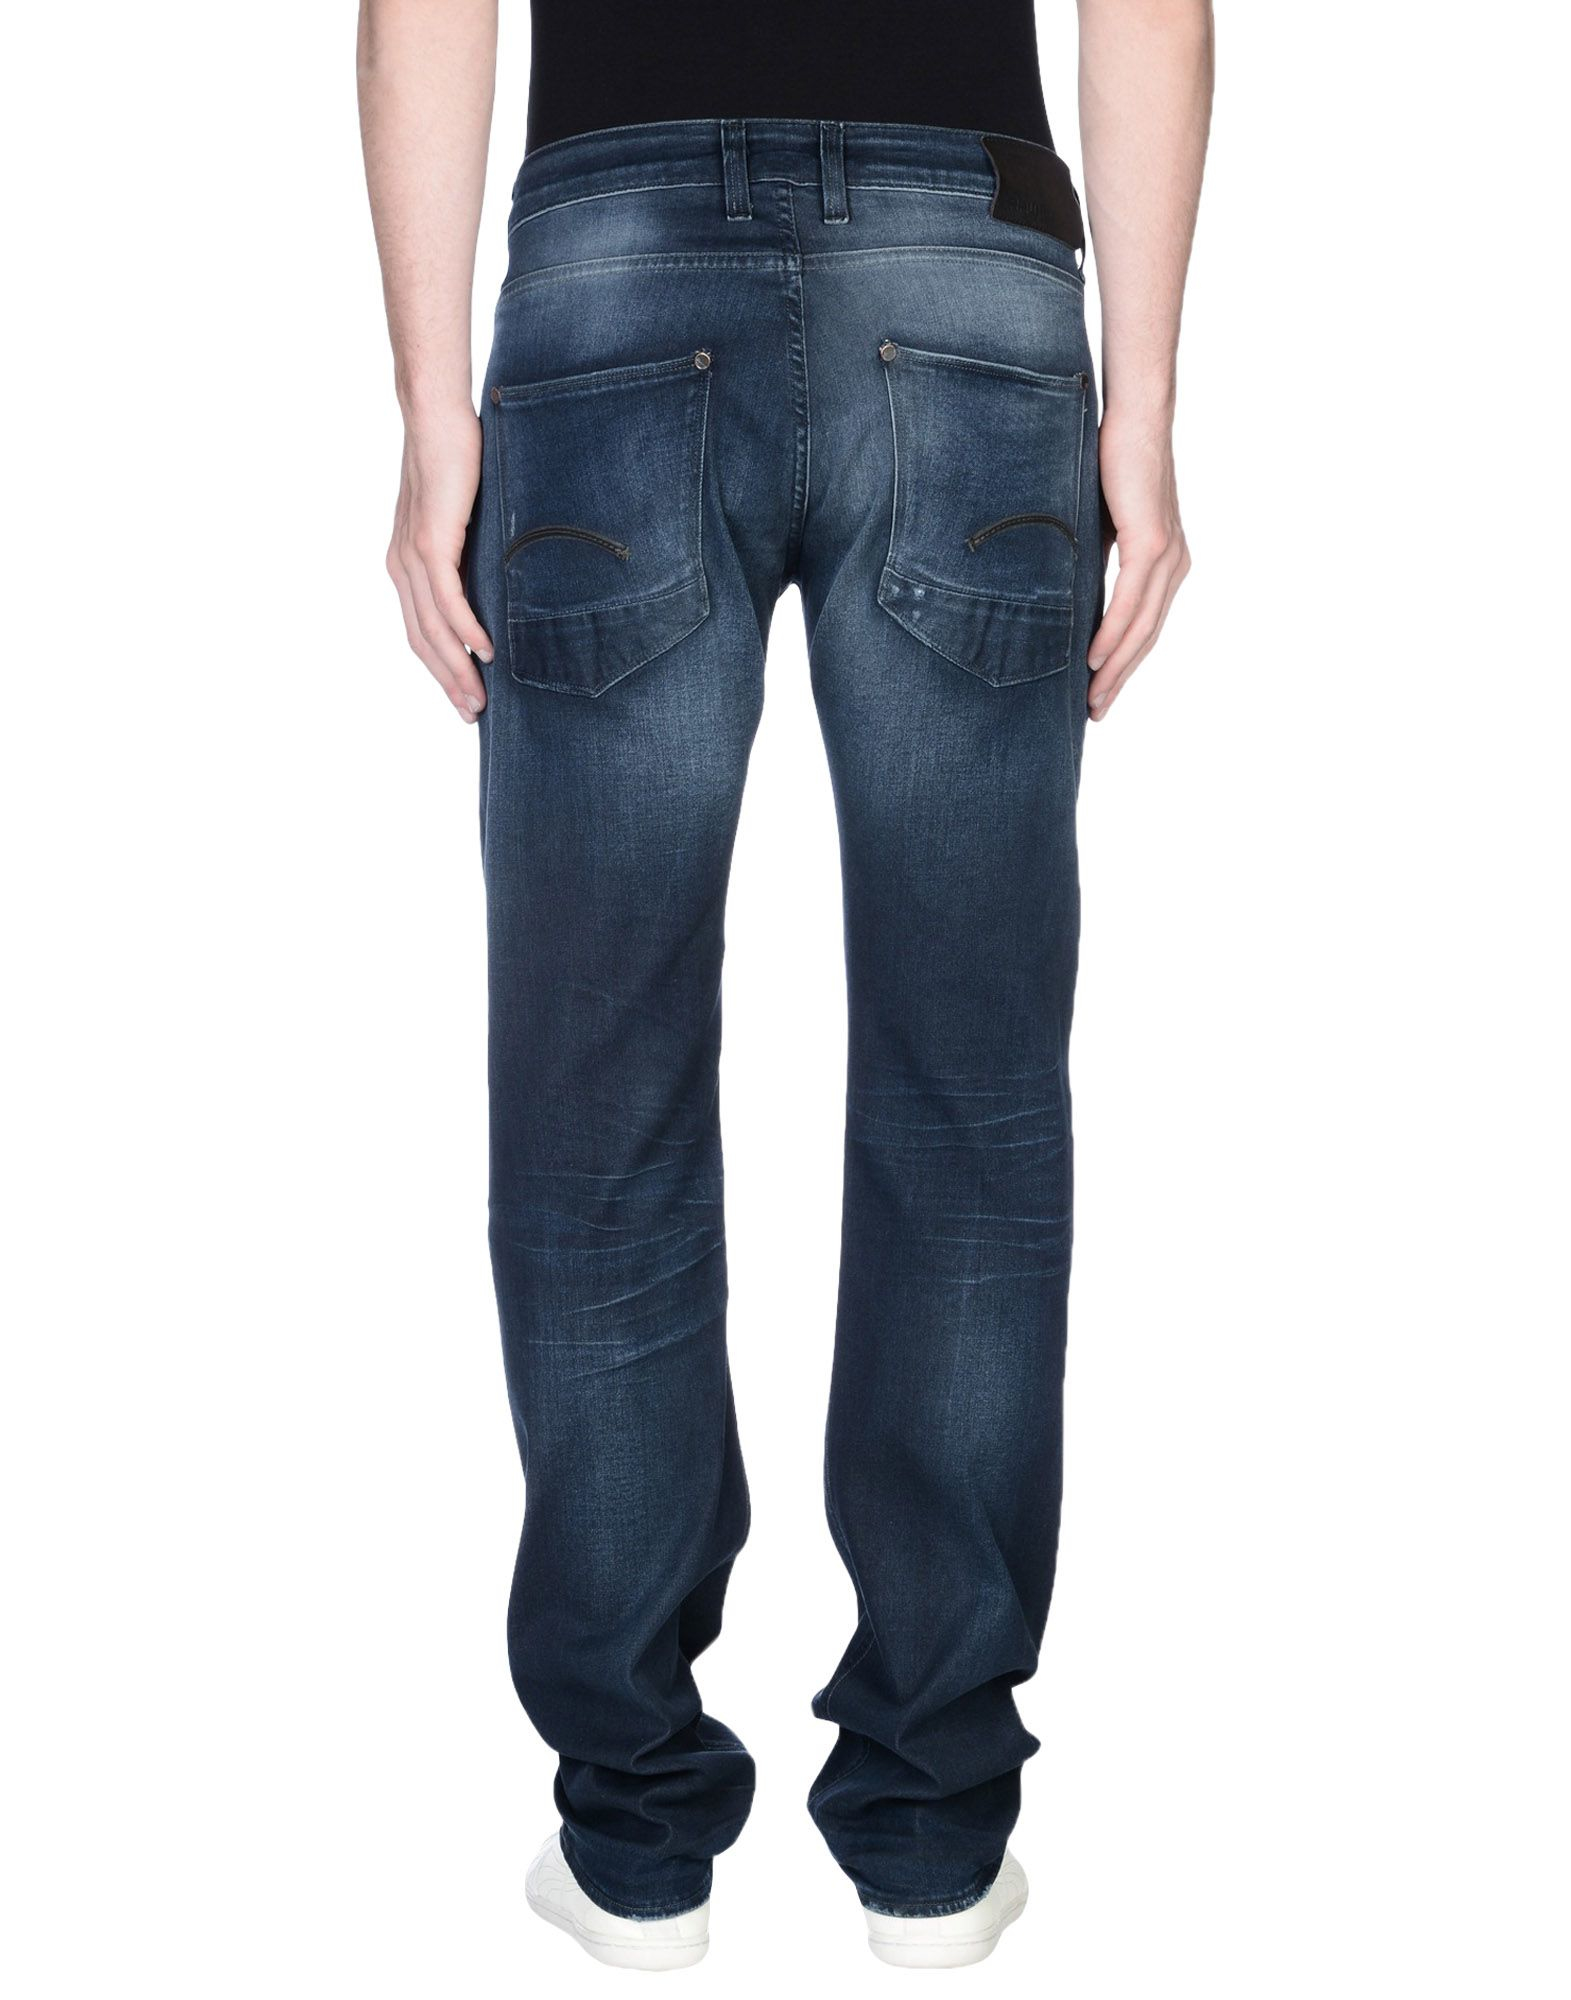 g star raw denim trousers in blue for men lyst. Black Bedroom Furniture Sets. Home Design Ideas